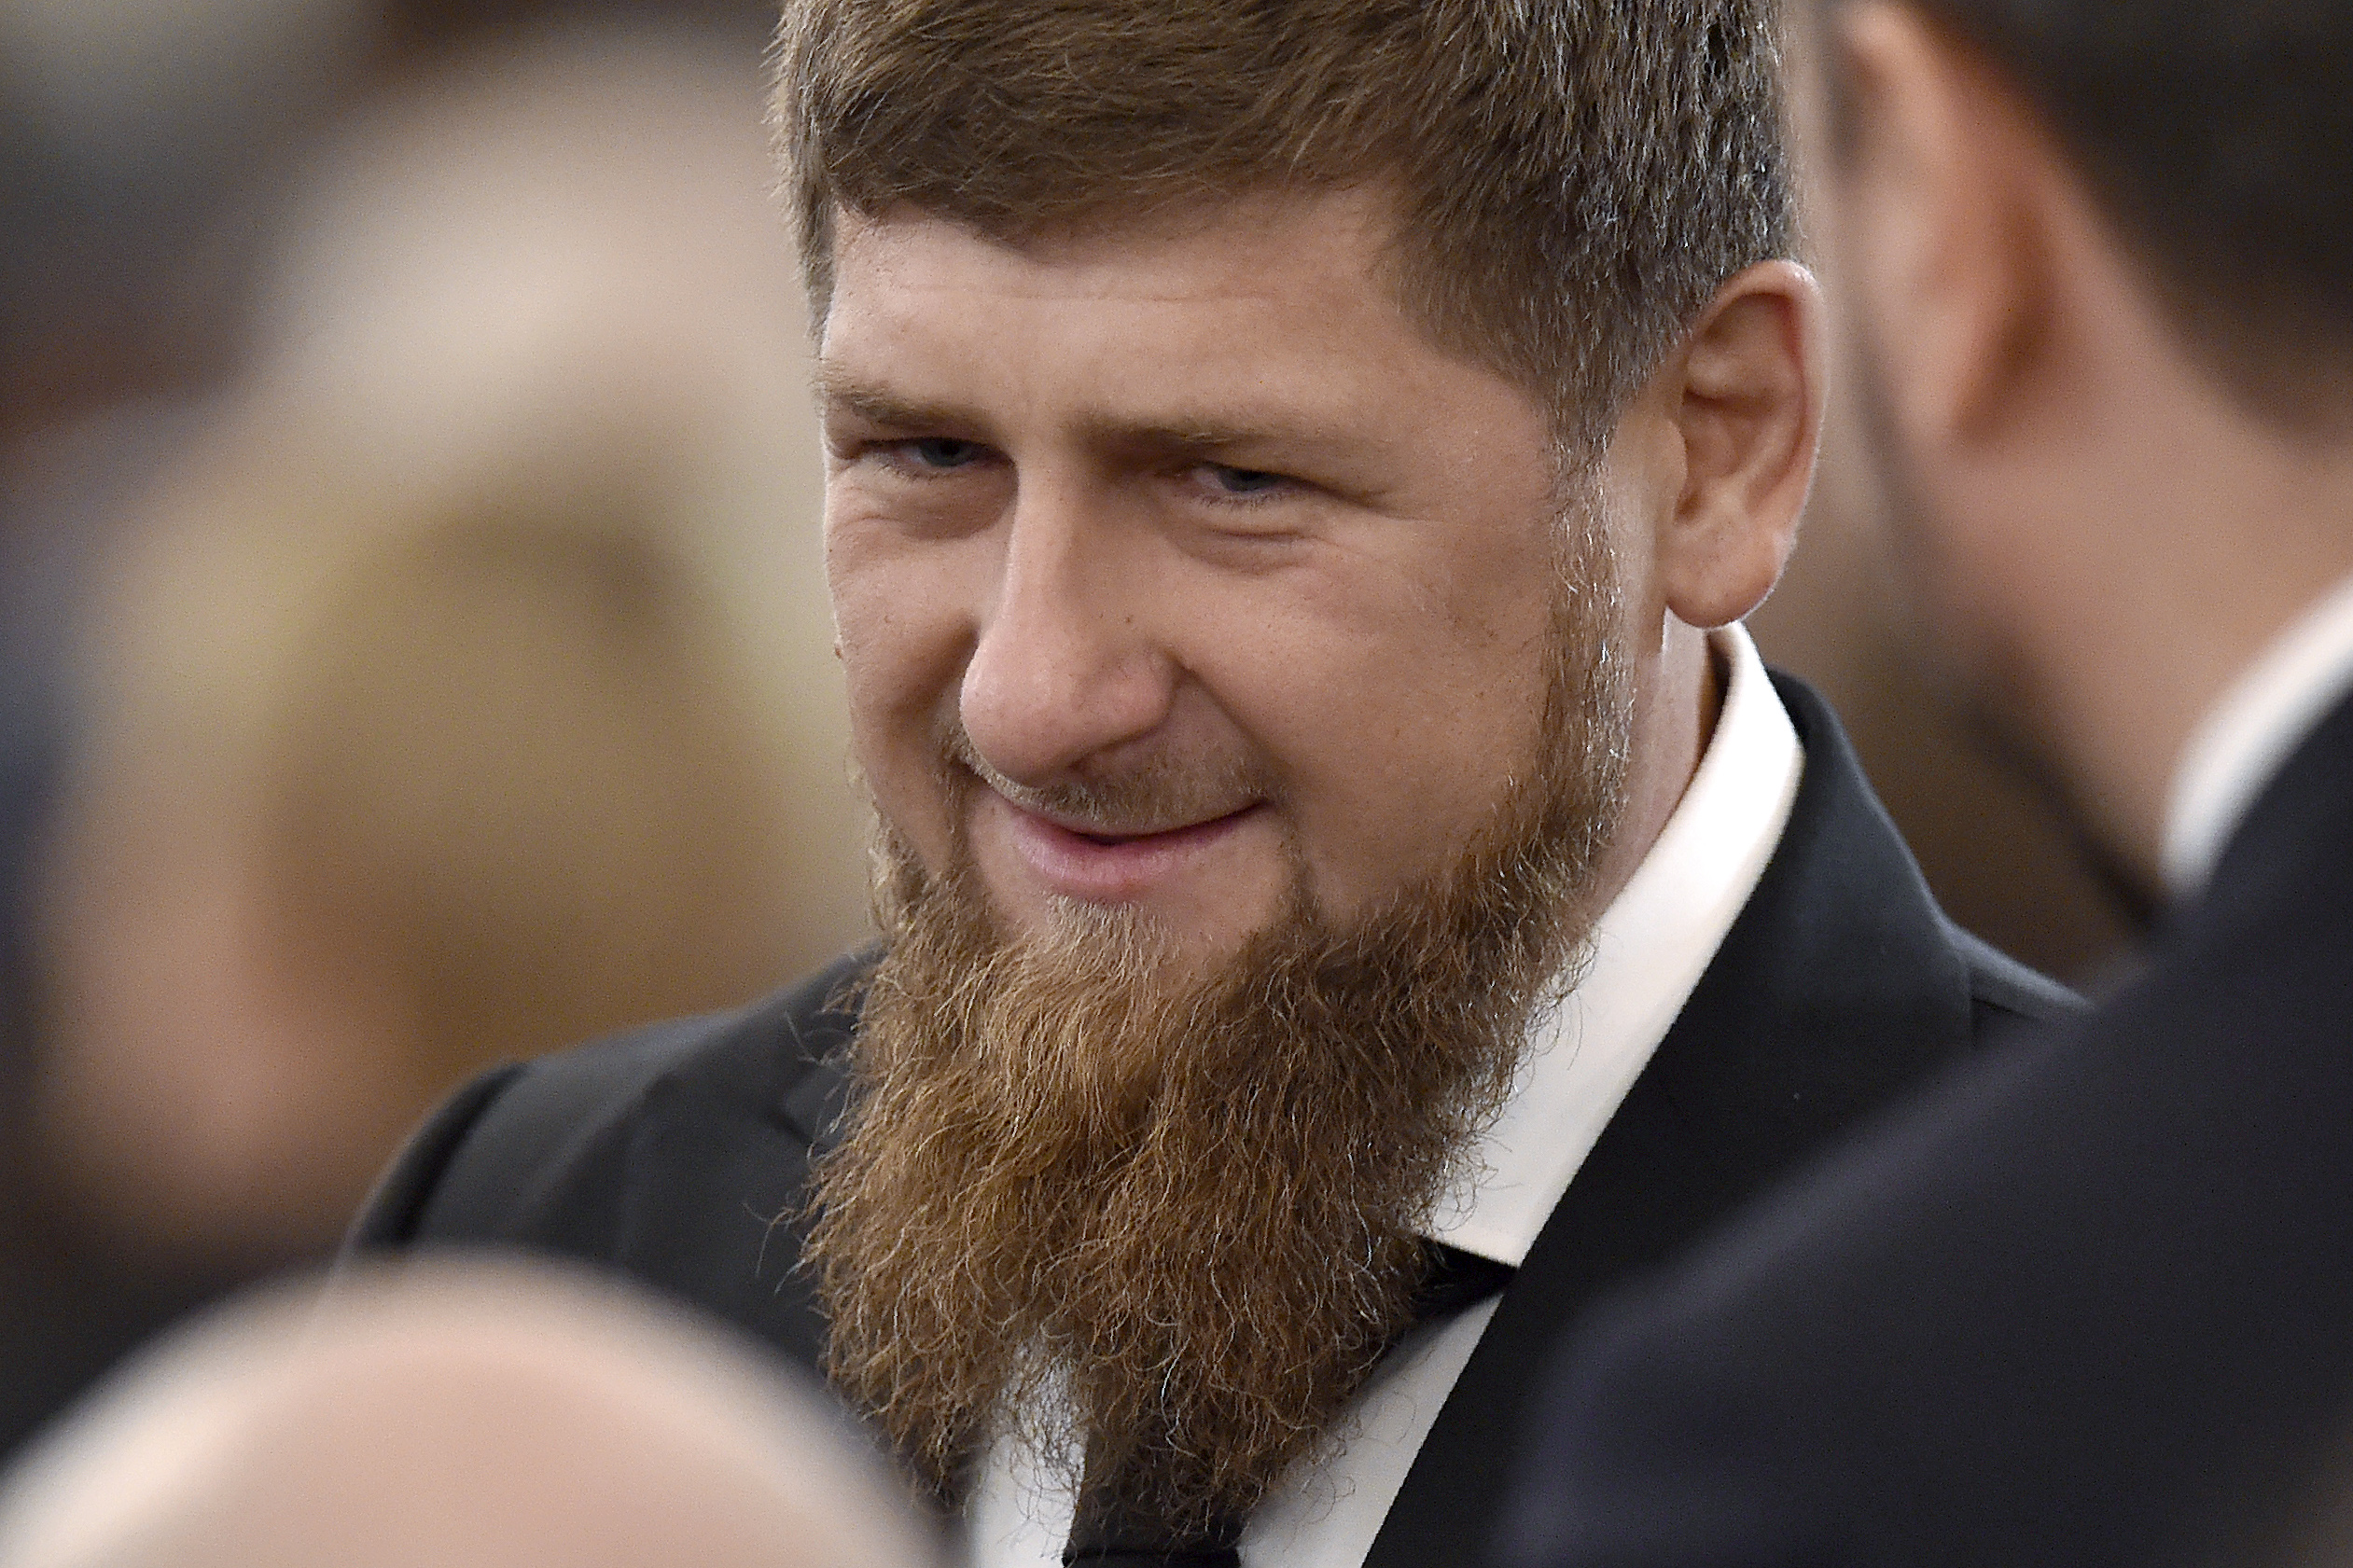 Chechnya's leader Ramzan Kadyrov at the Kremlin in Moscow on December 1, 2016.